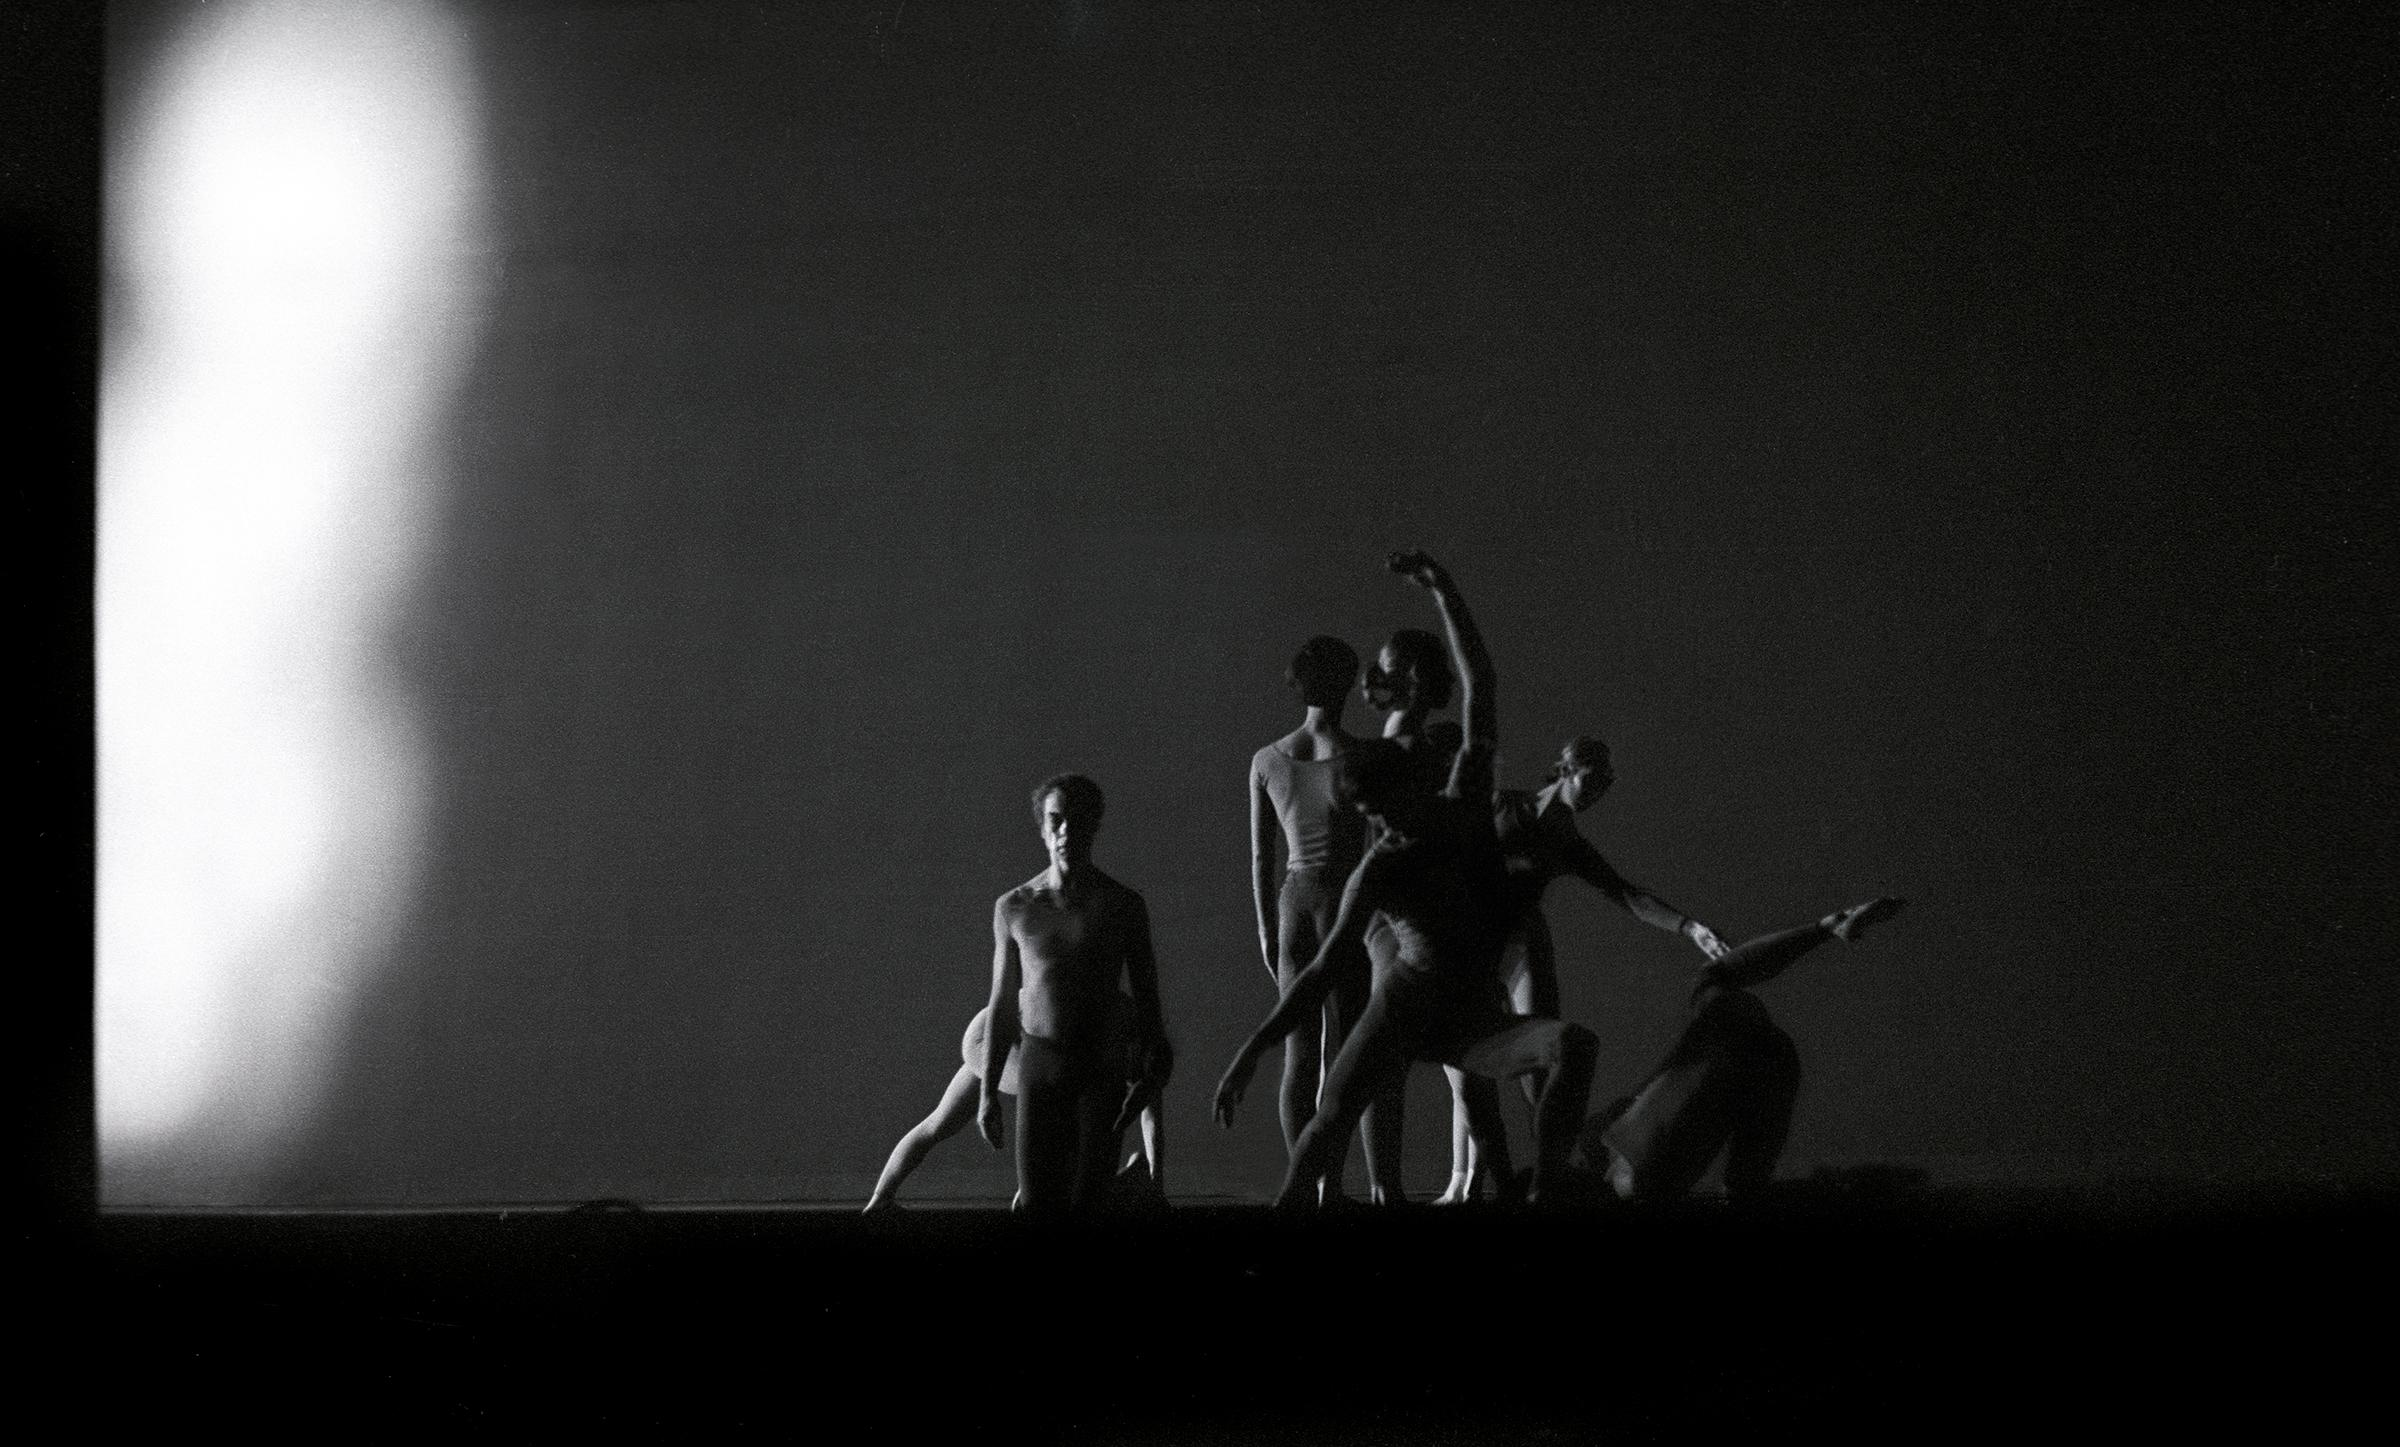 The black-and-white image captures a cluster of seven dancers holding poses against an empty background, with a strong light coming from the left.